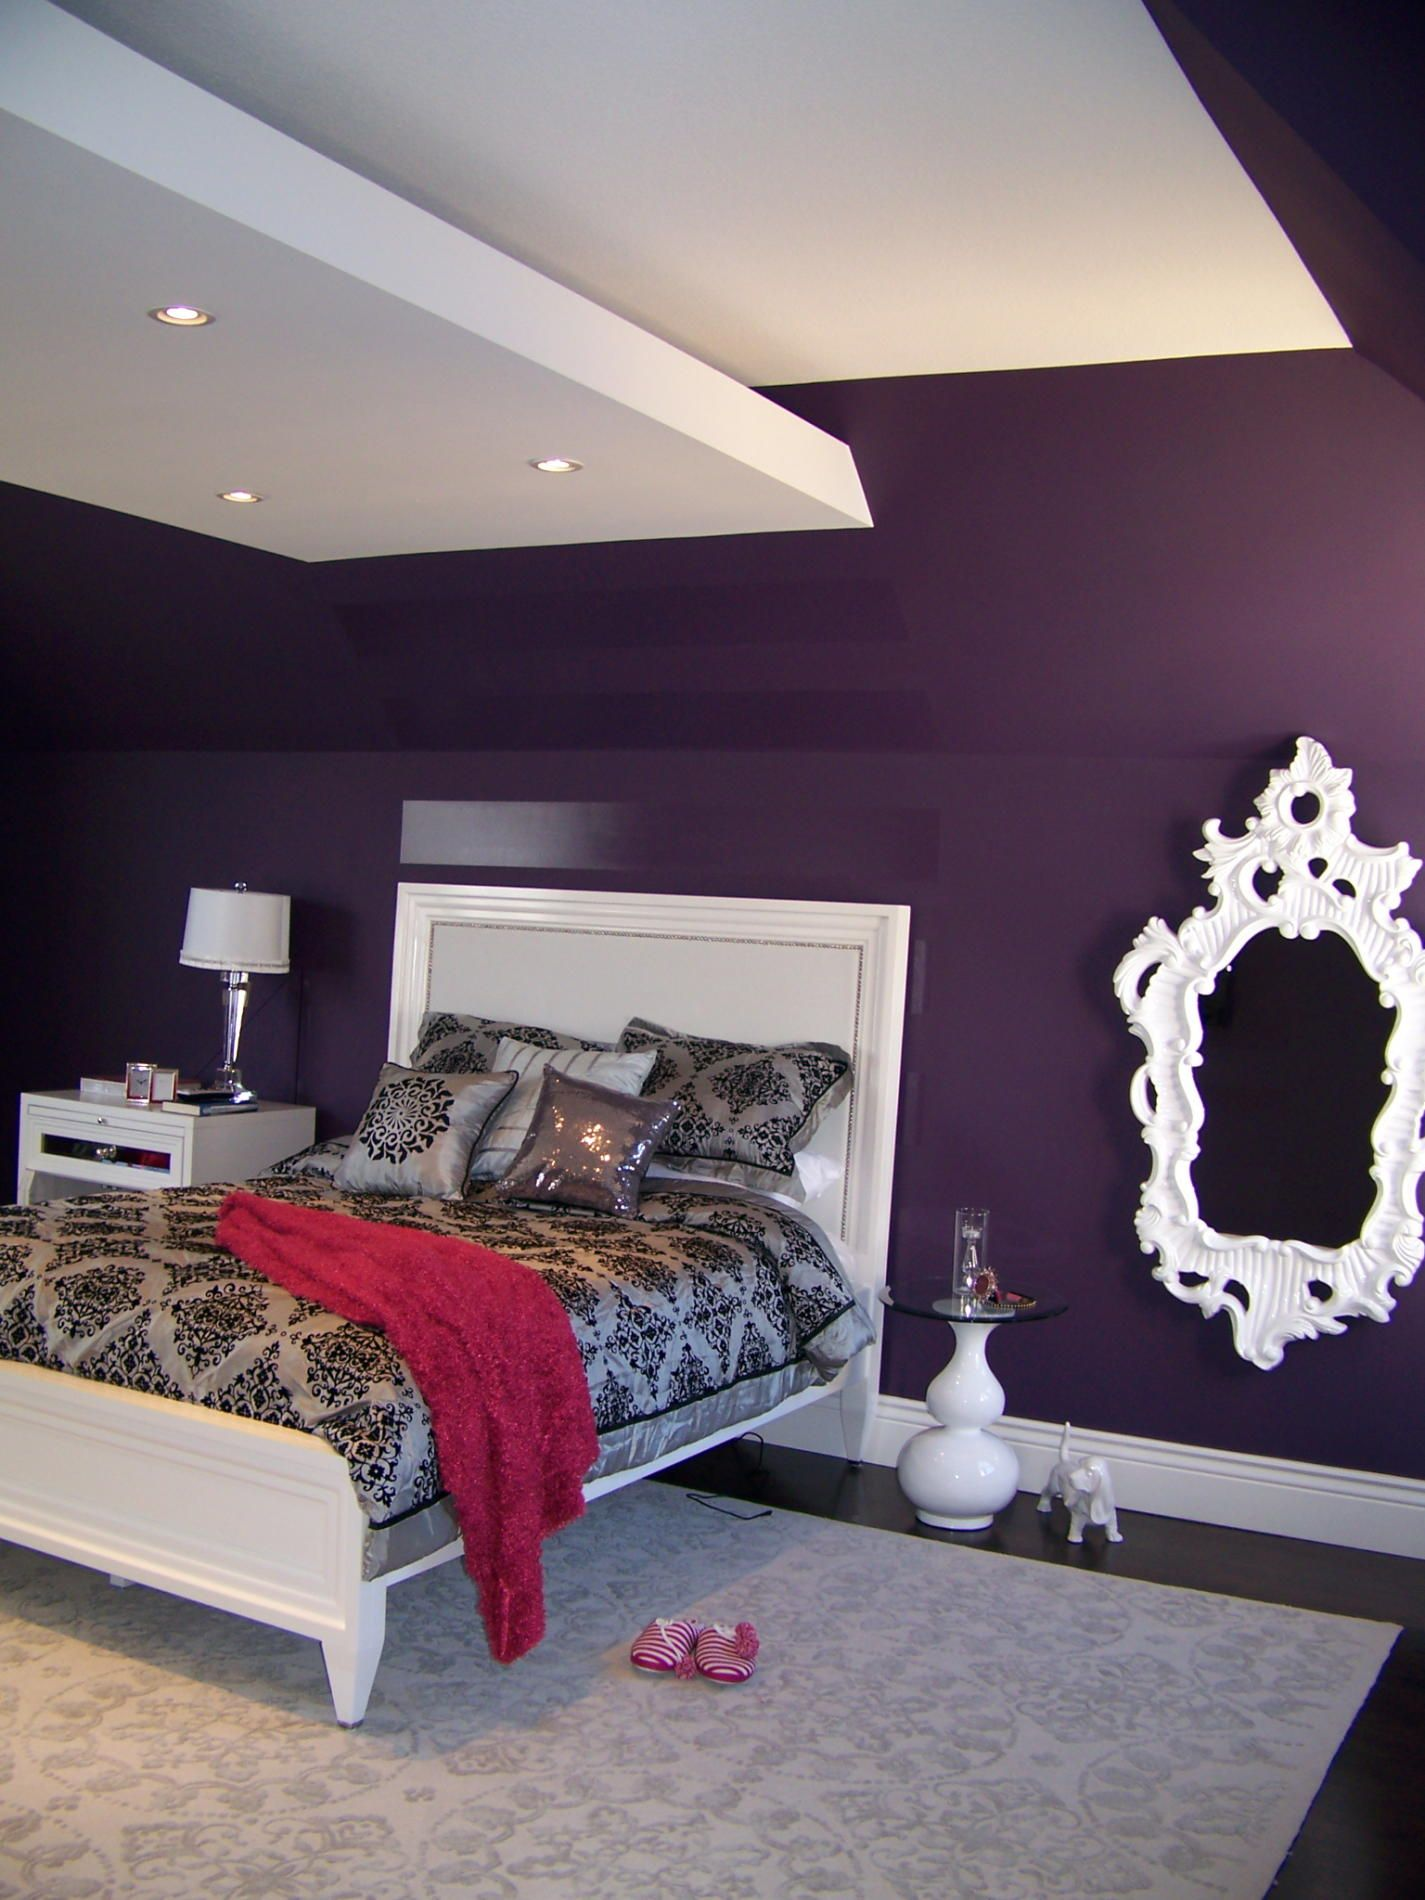 Contrast Cool Bedrooms Bedroom Designs Lavender Room Agers